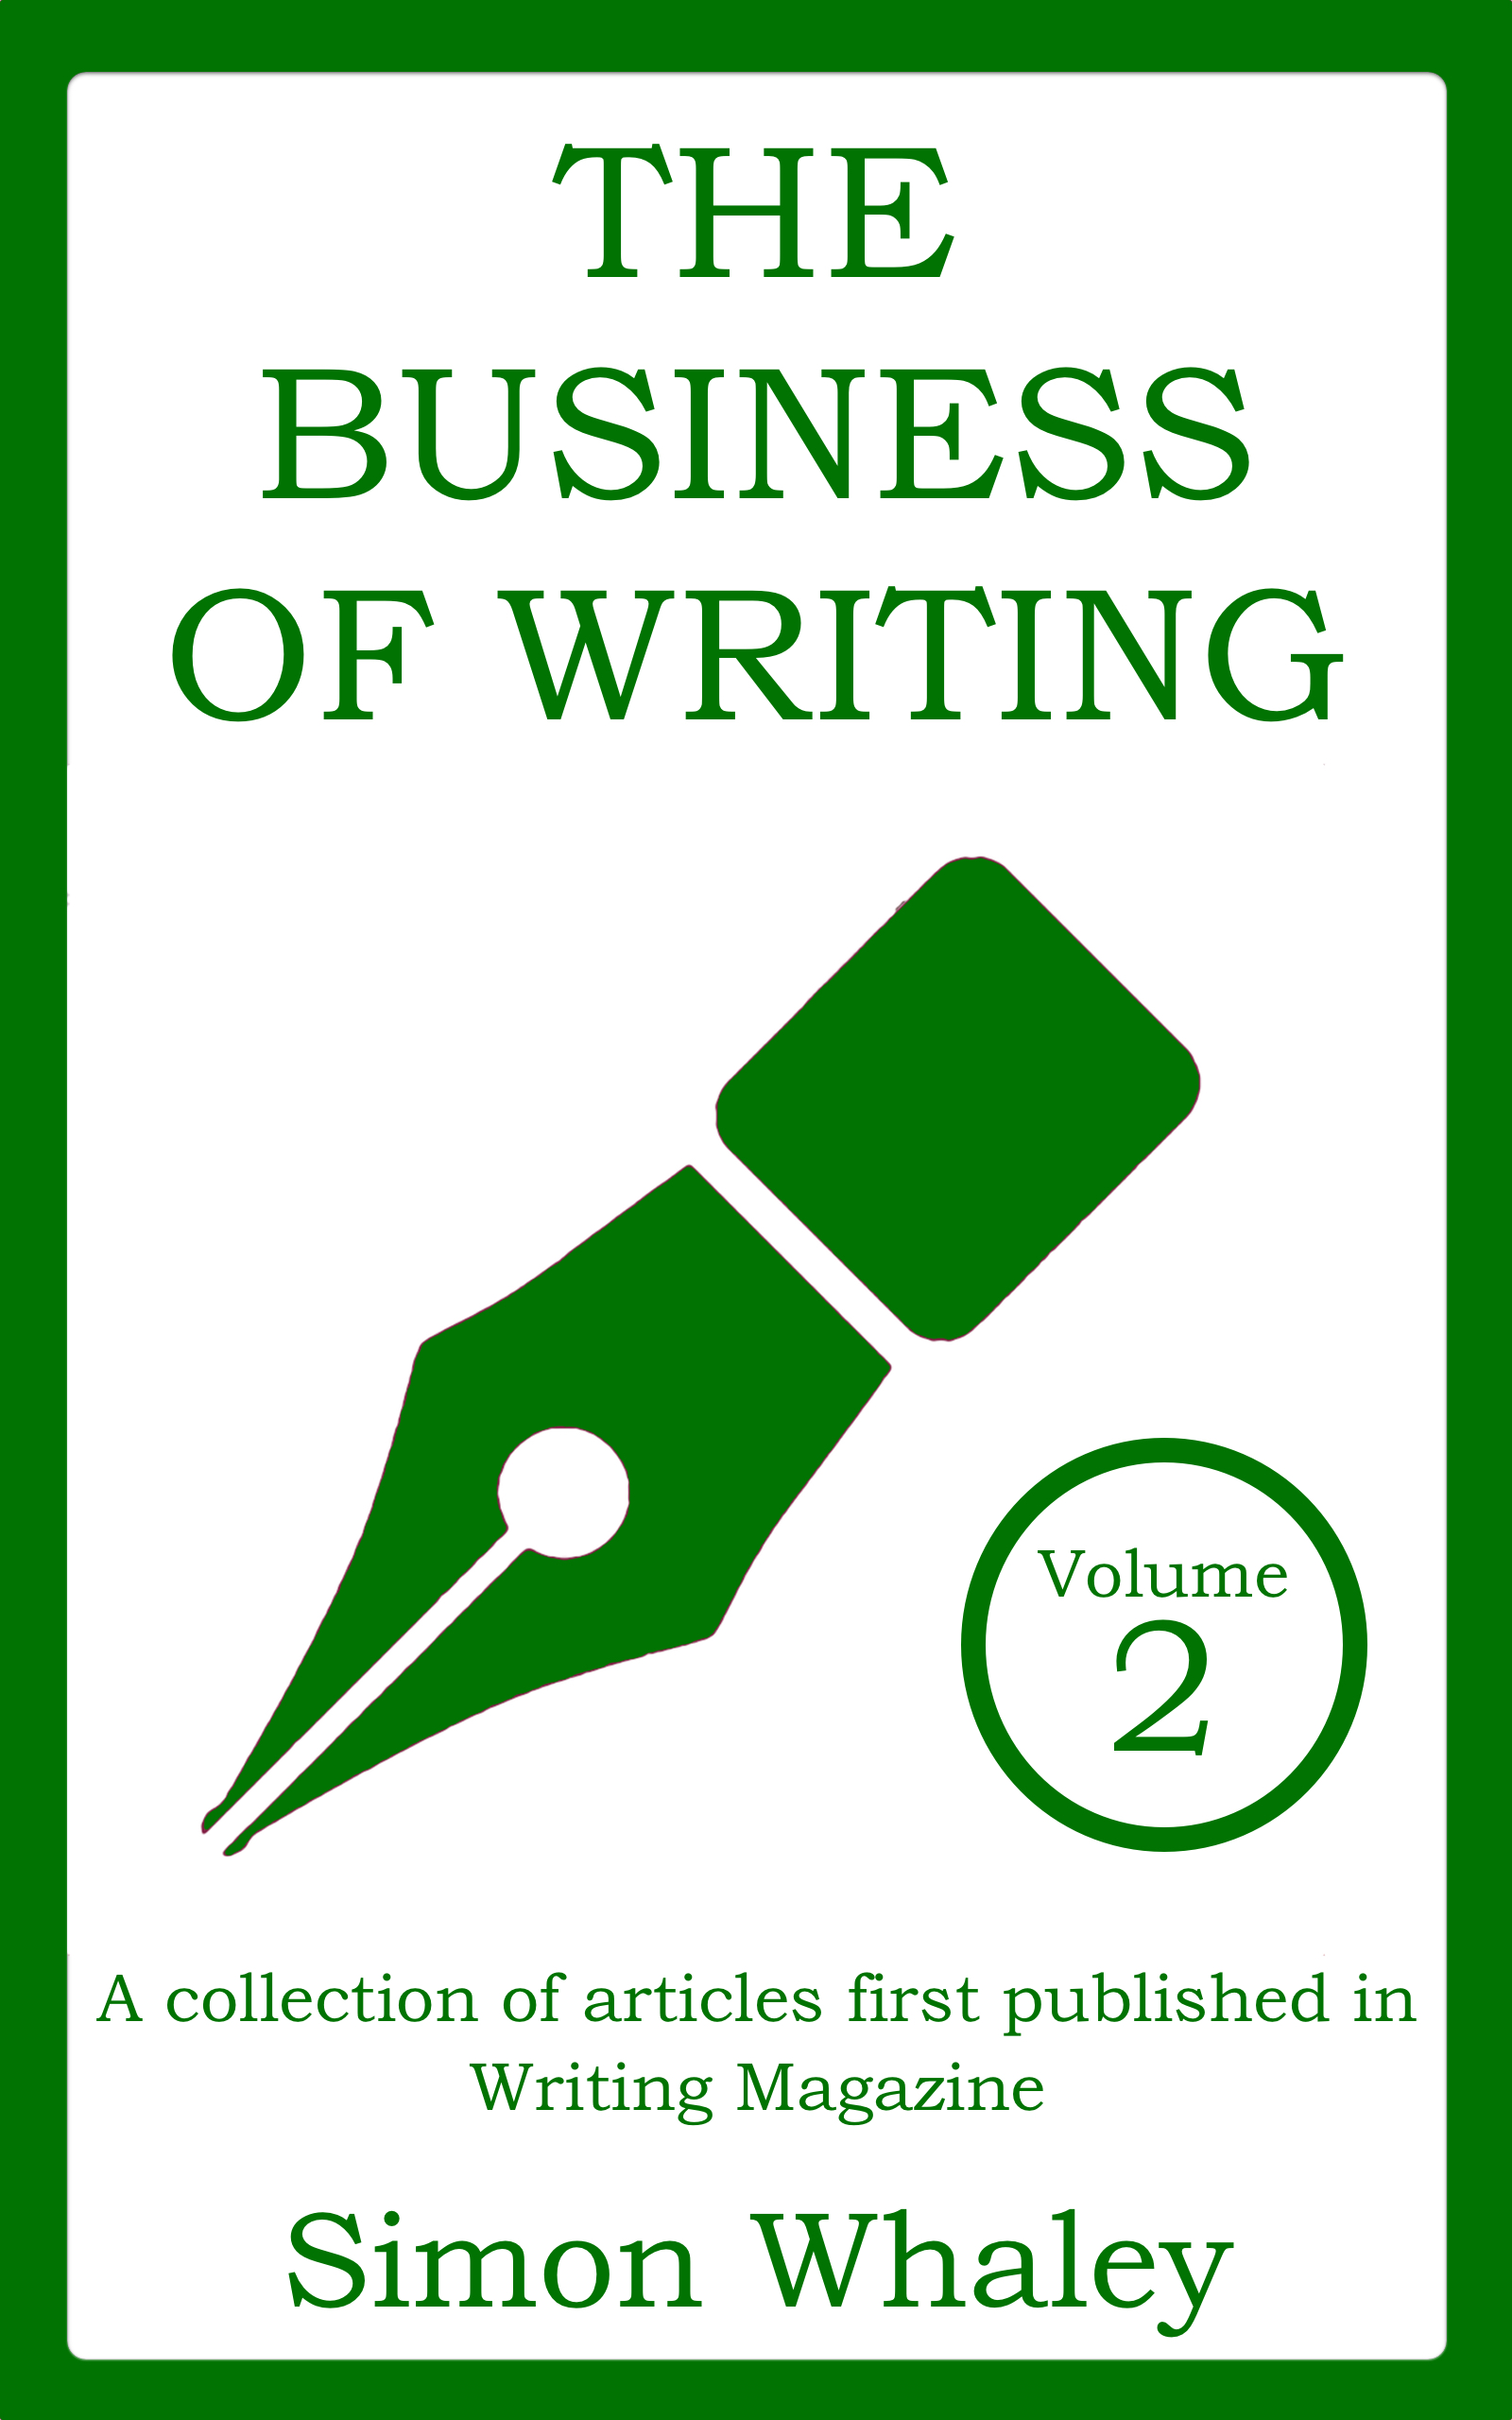 Business of Writing – Volume 2 launched